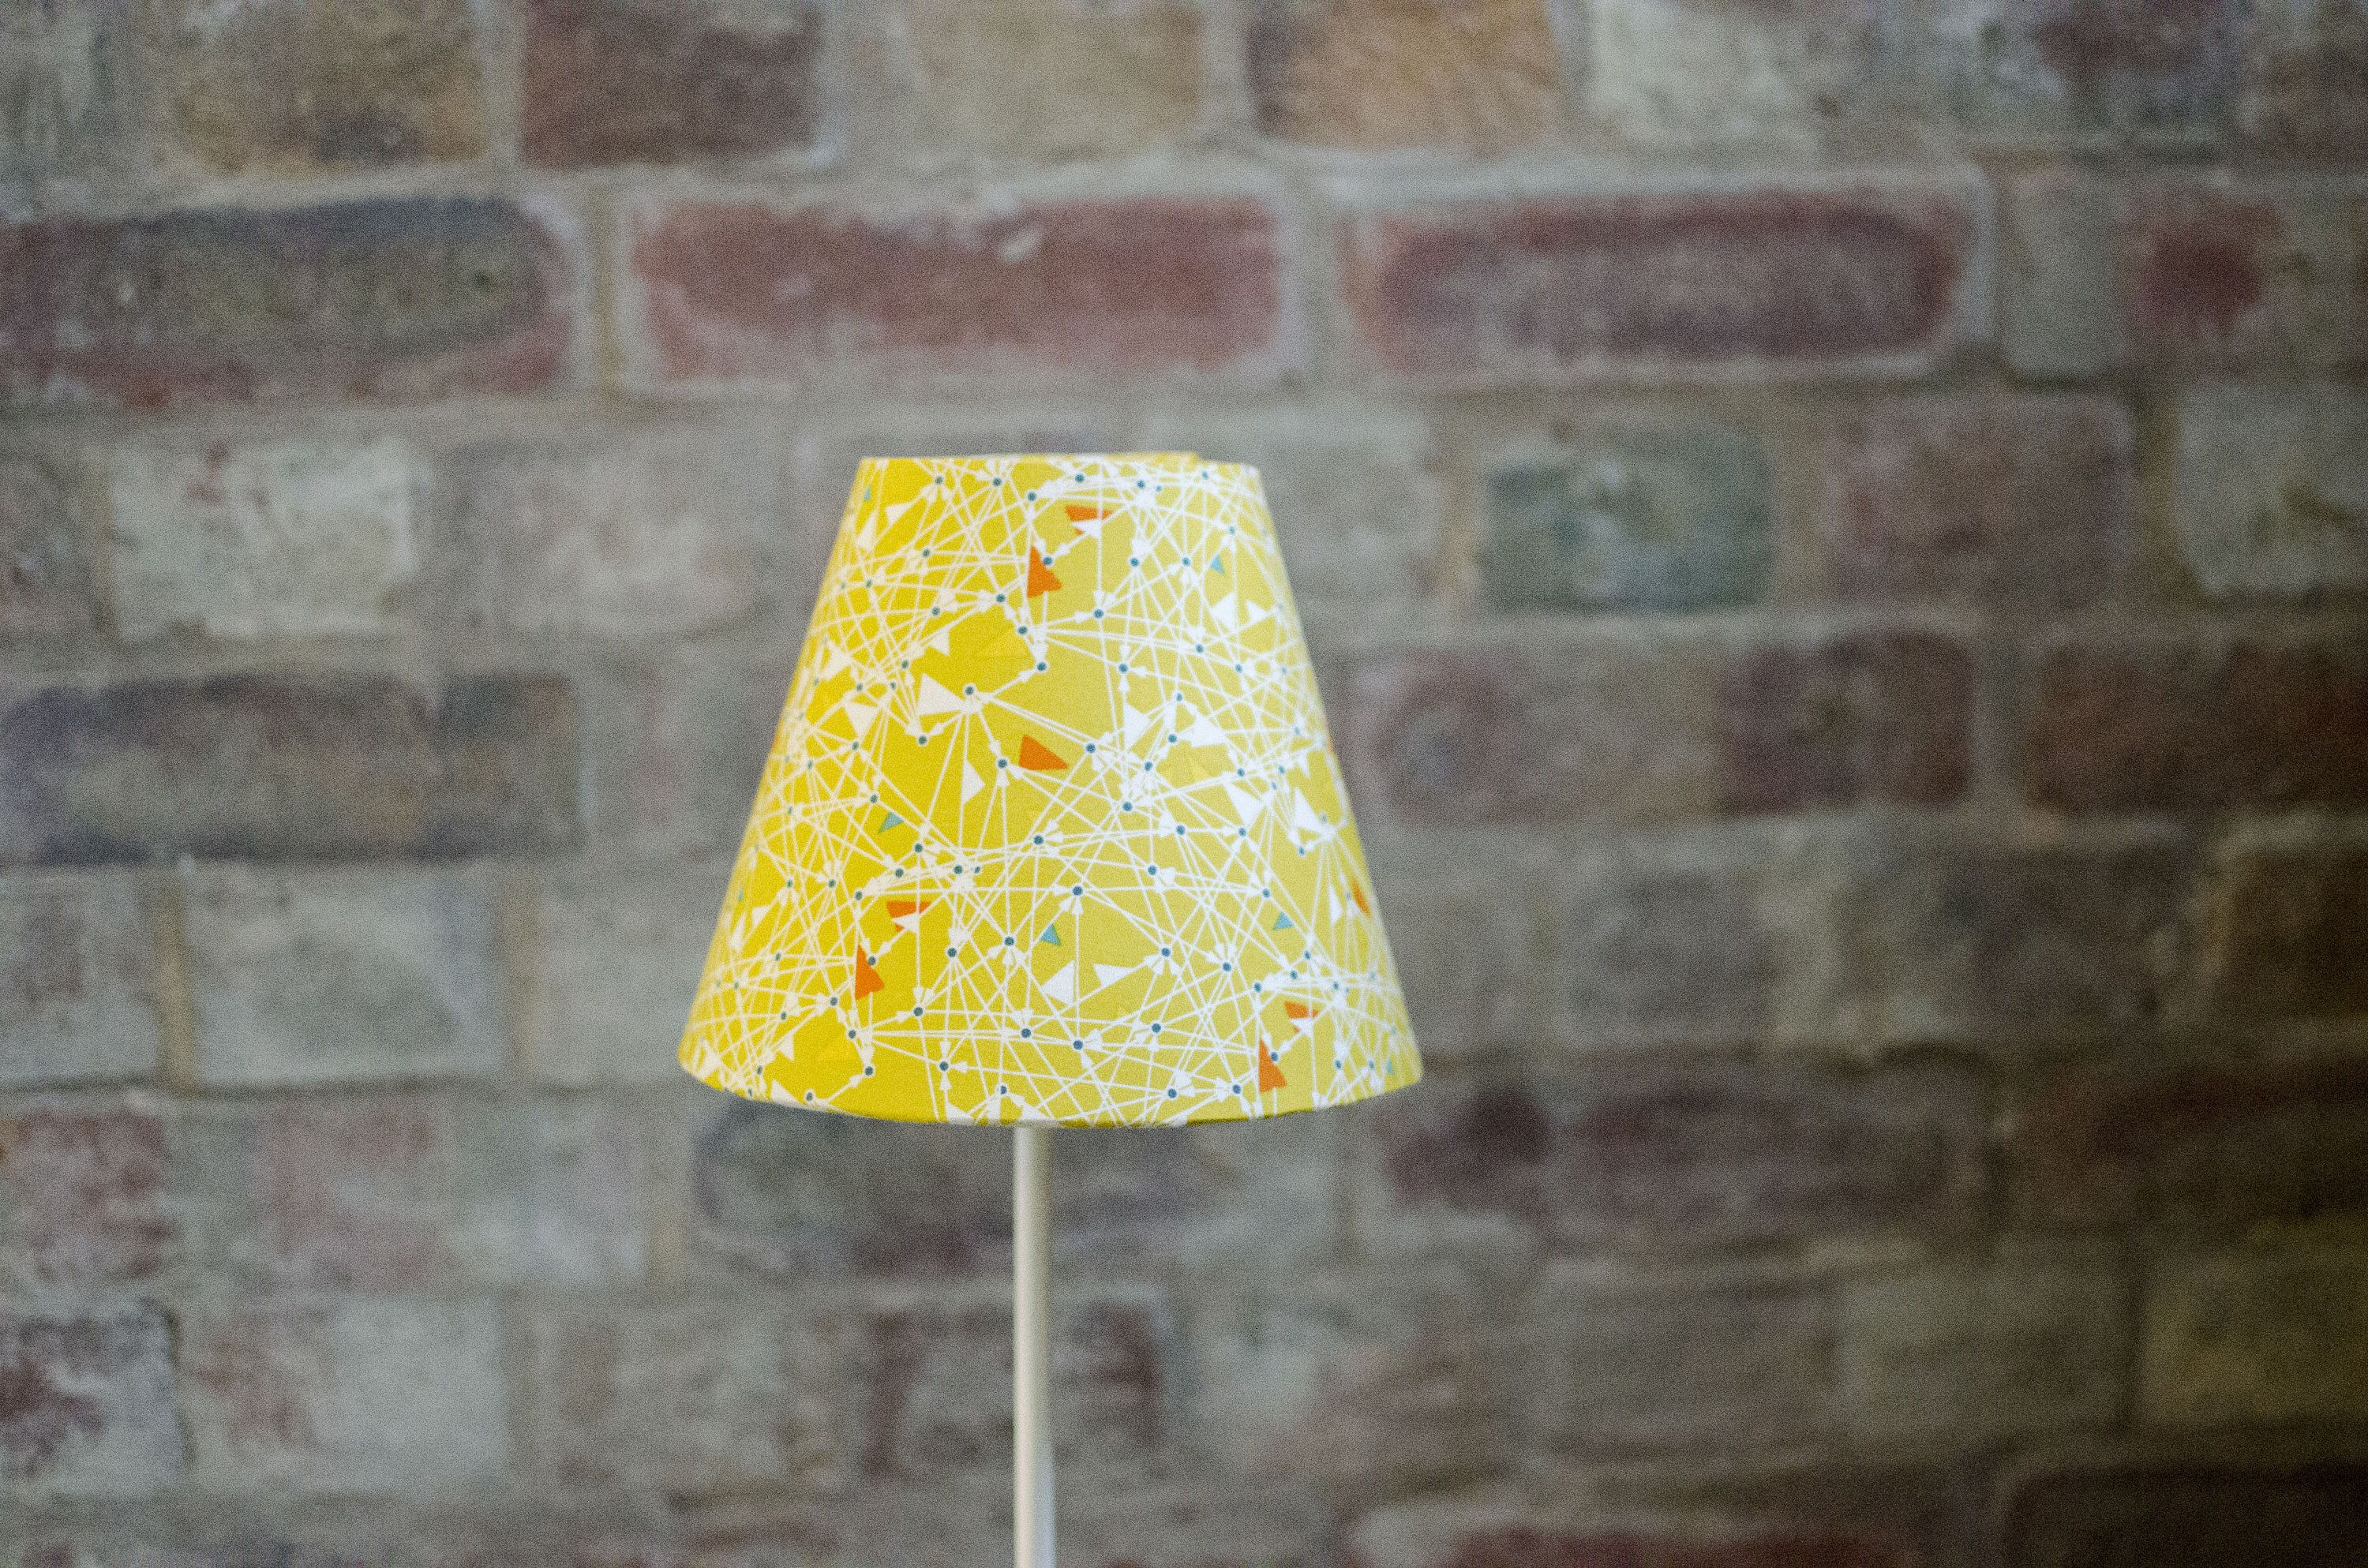 Geometric Lampshades Yellow Lamp Shade Mustard Lamp Shade Small Table Lampshade Yellow Home Decor Yellow Geometric Lampshade Yellow Lamp Shades Lamp Shade